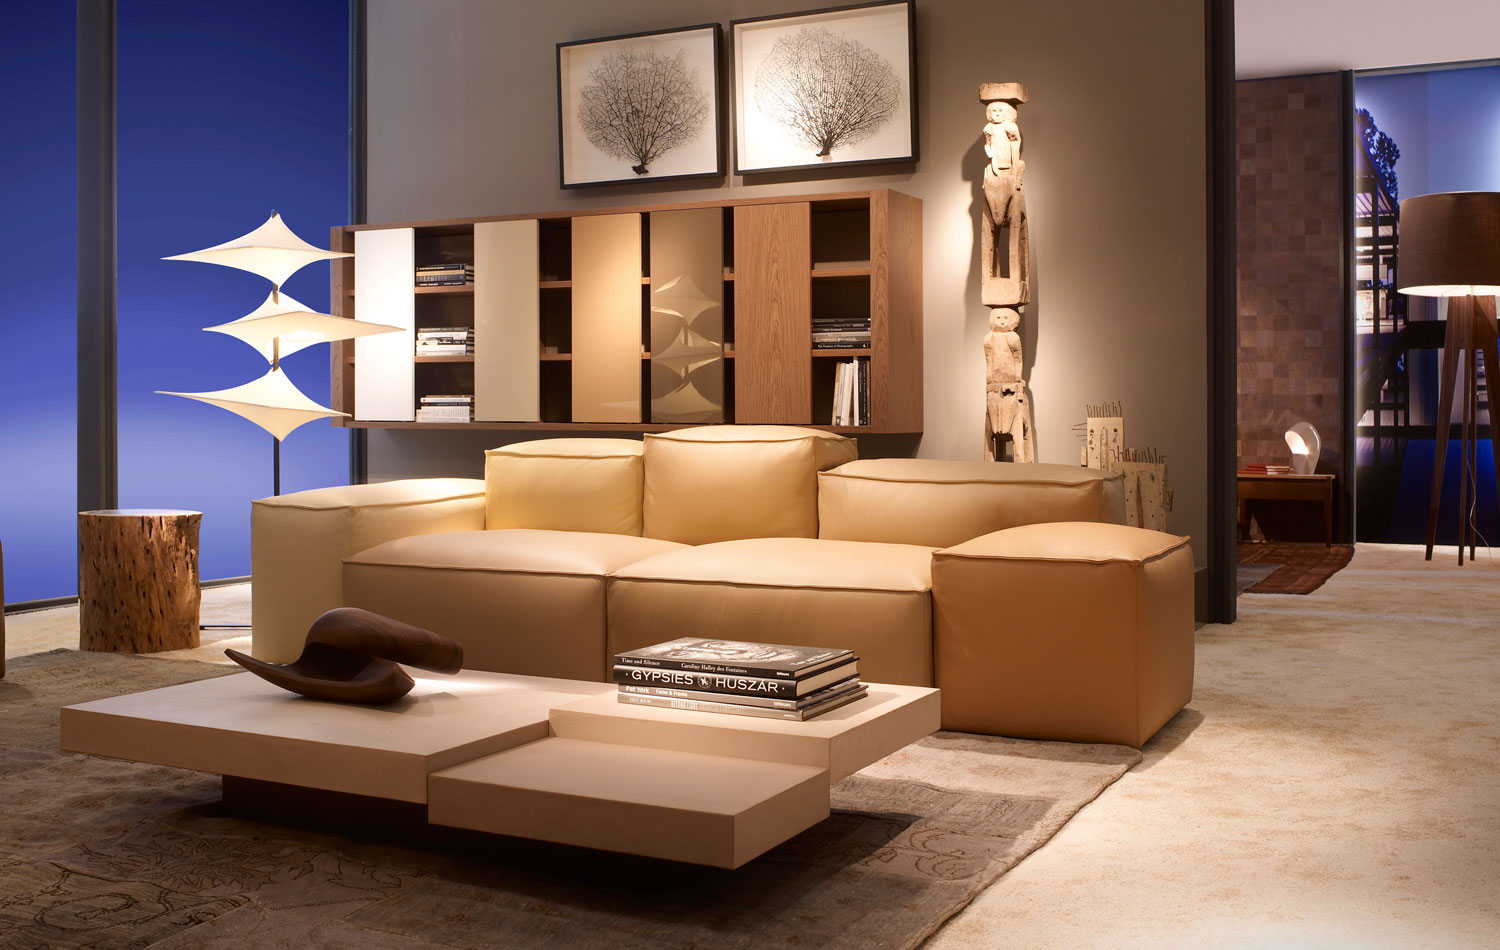 modern sofas collection 2010 from roche bobois best home news ll about interior design. Black Bedroom Furniture Sets. Home Design Ideas